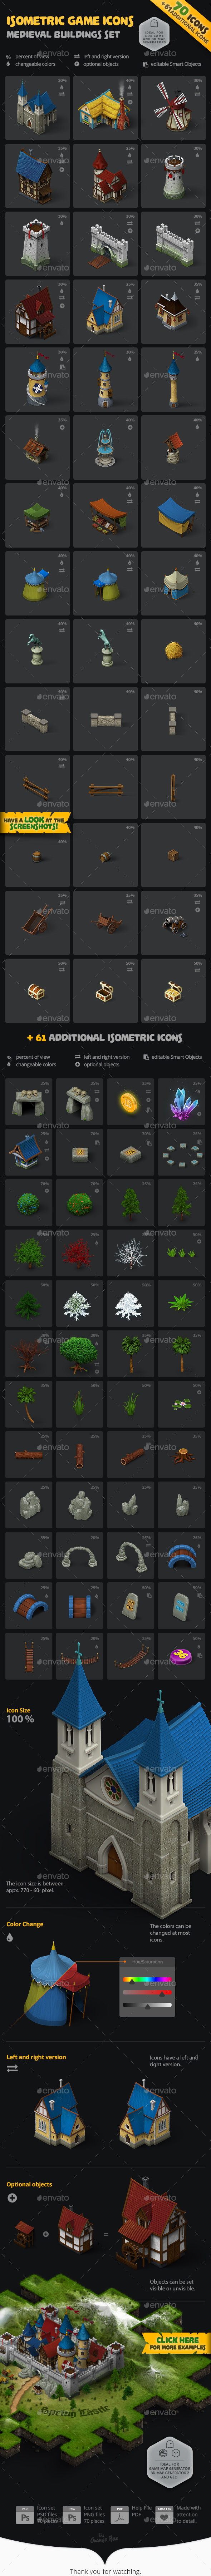 Isometric Game Icons - Medieval Buildings Set - Game Kits Game Assets